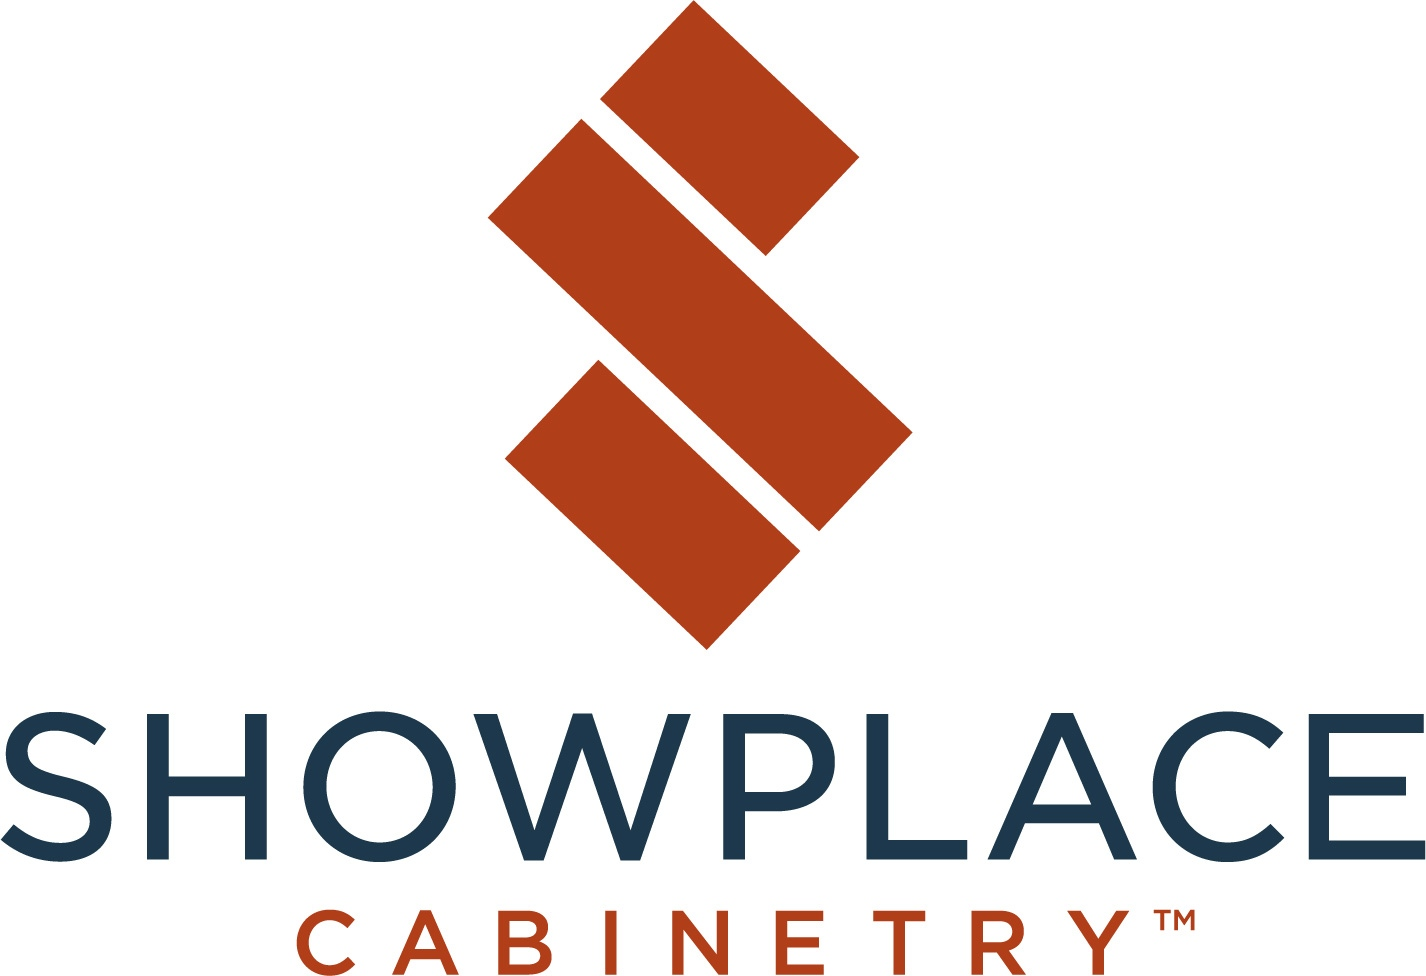 Showplace-Cabinetry_4C_VER